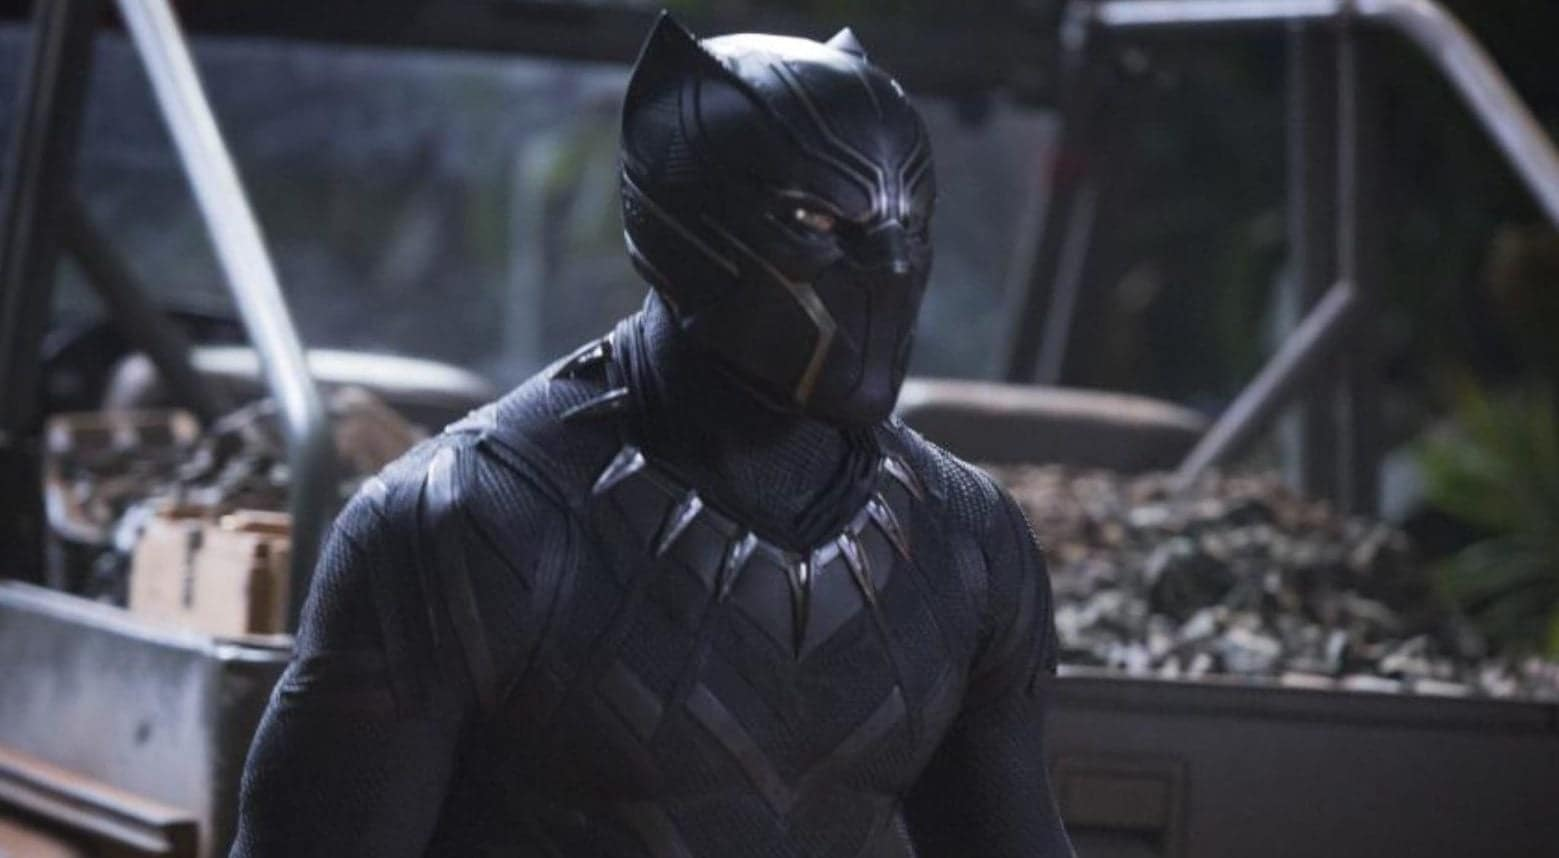 Black Panther Box Office Now Top 10 All-Time Domestically